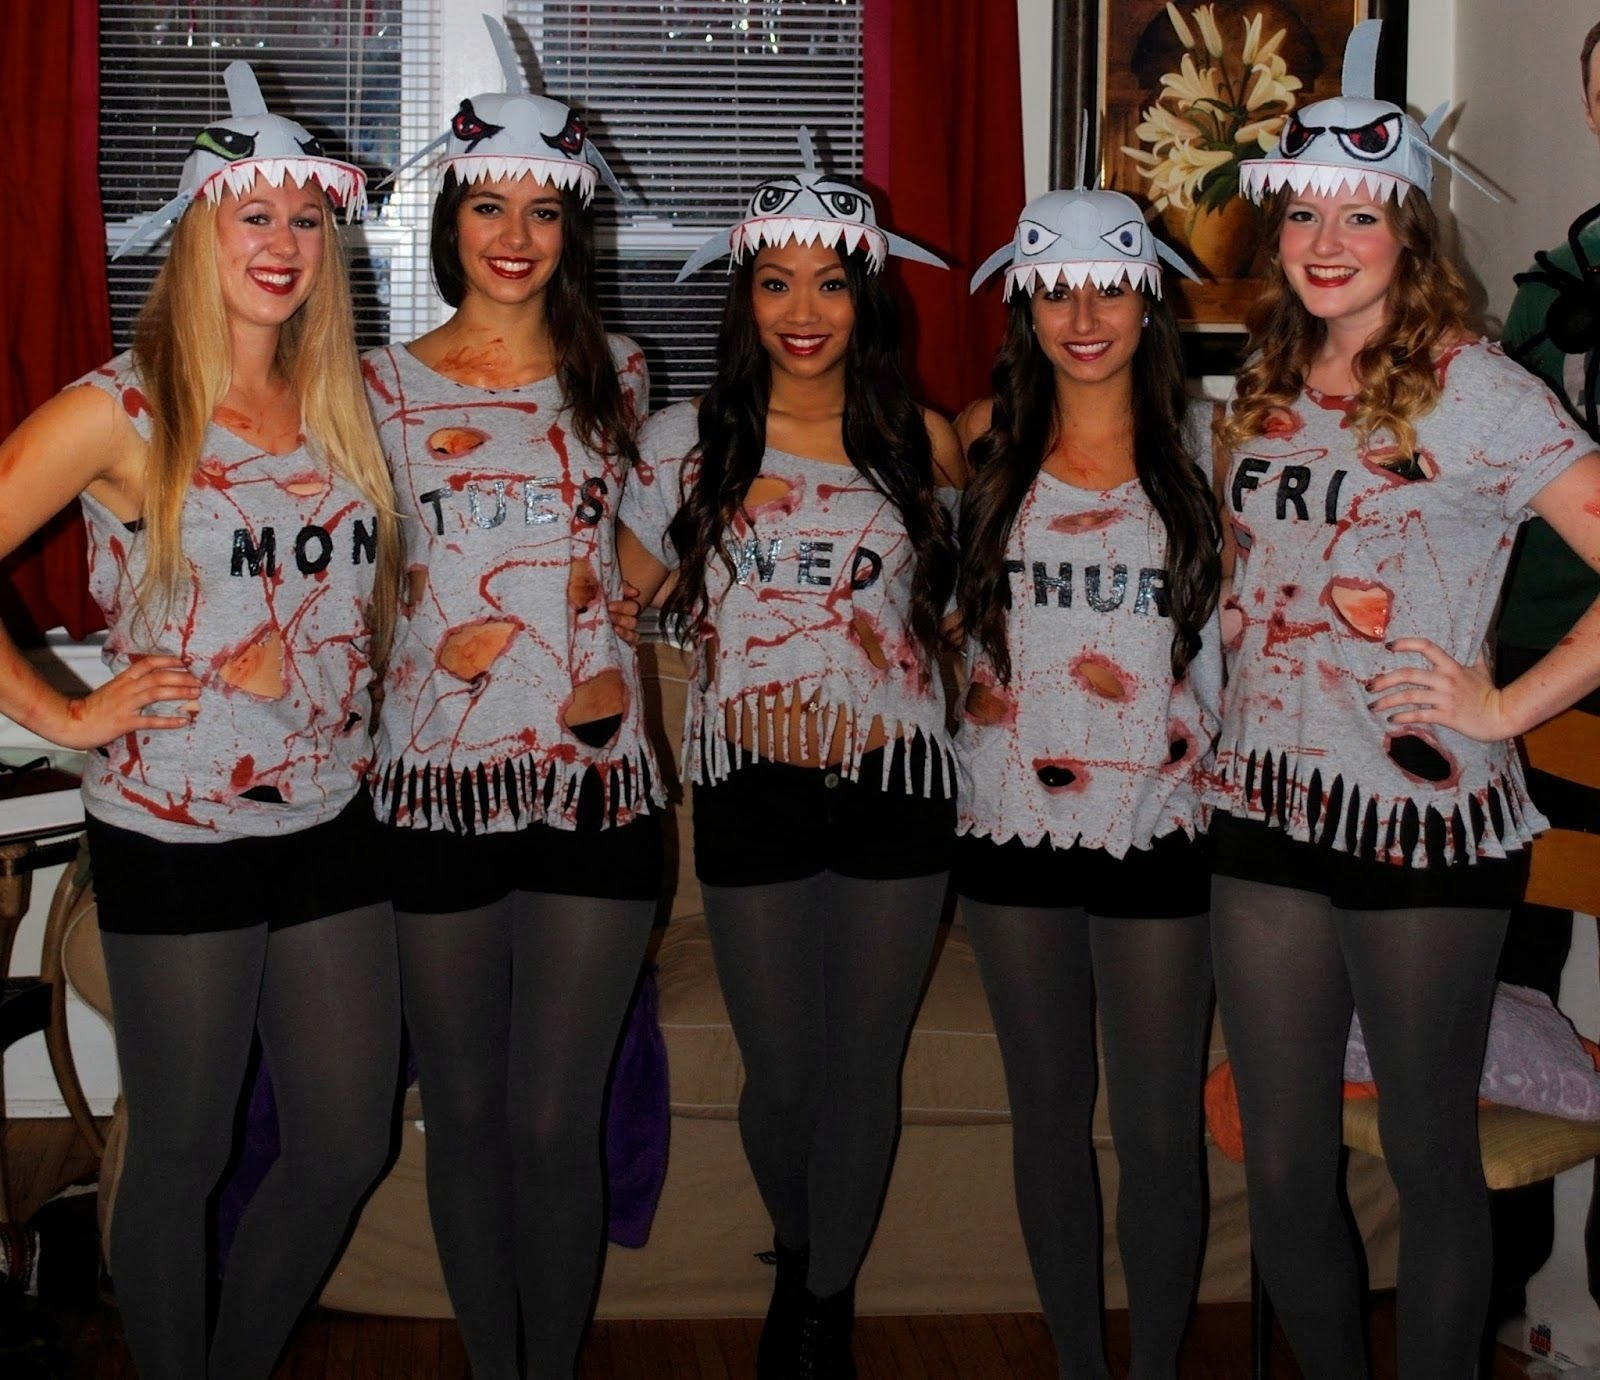 10 Best Group Costume Ideas For 4 People okay here it is my halloween costume with me and 4 of my friends 1 2020